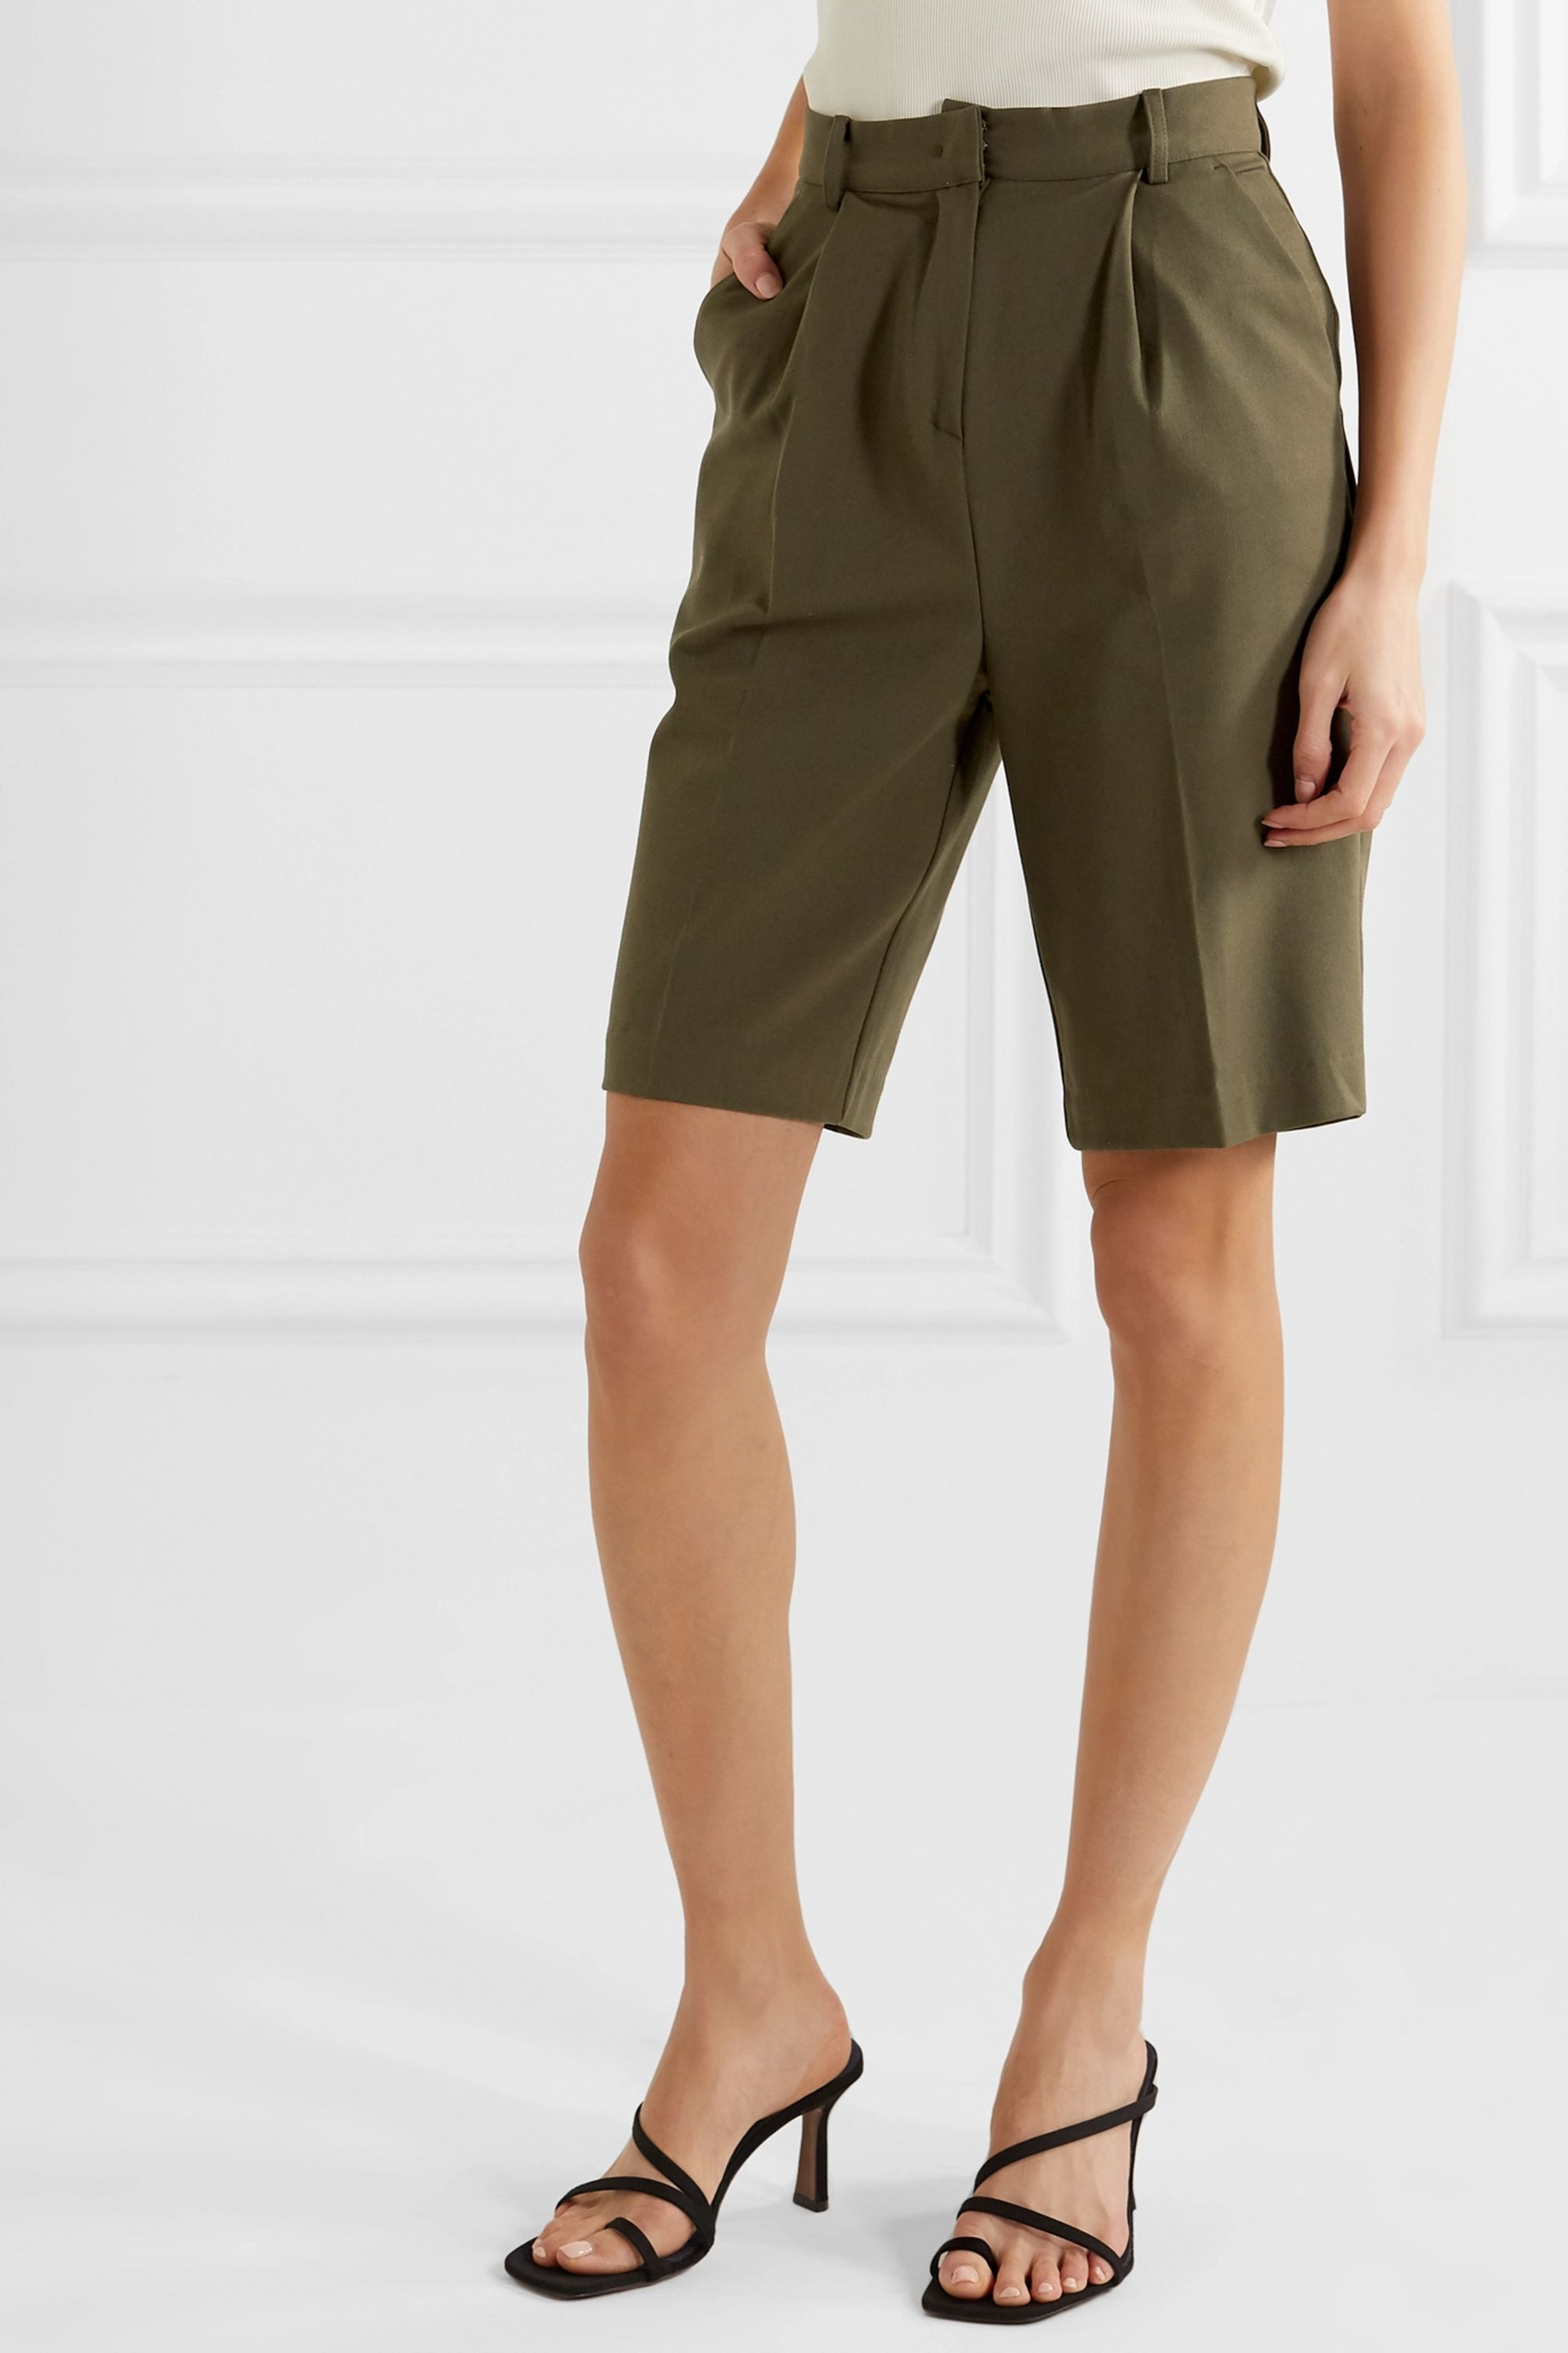 Frankie Shop Julie pleated gabardine shorts